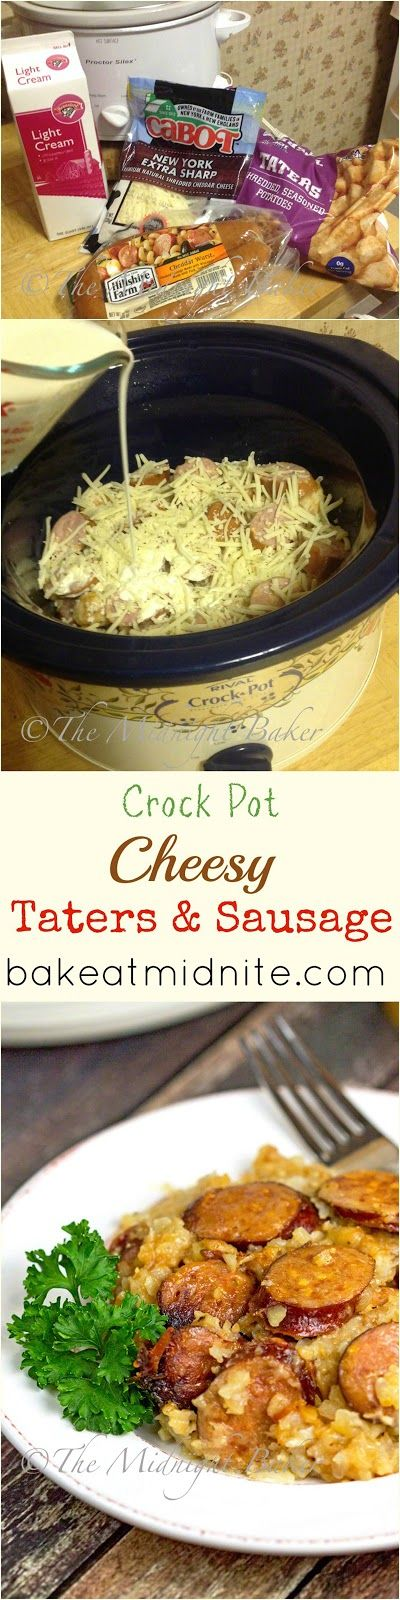 Crock Pot Cheesy Taters & Sausage | bakeatmidnite.com